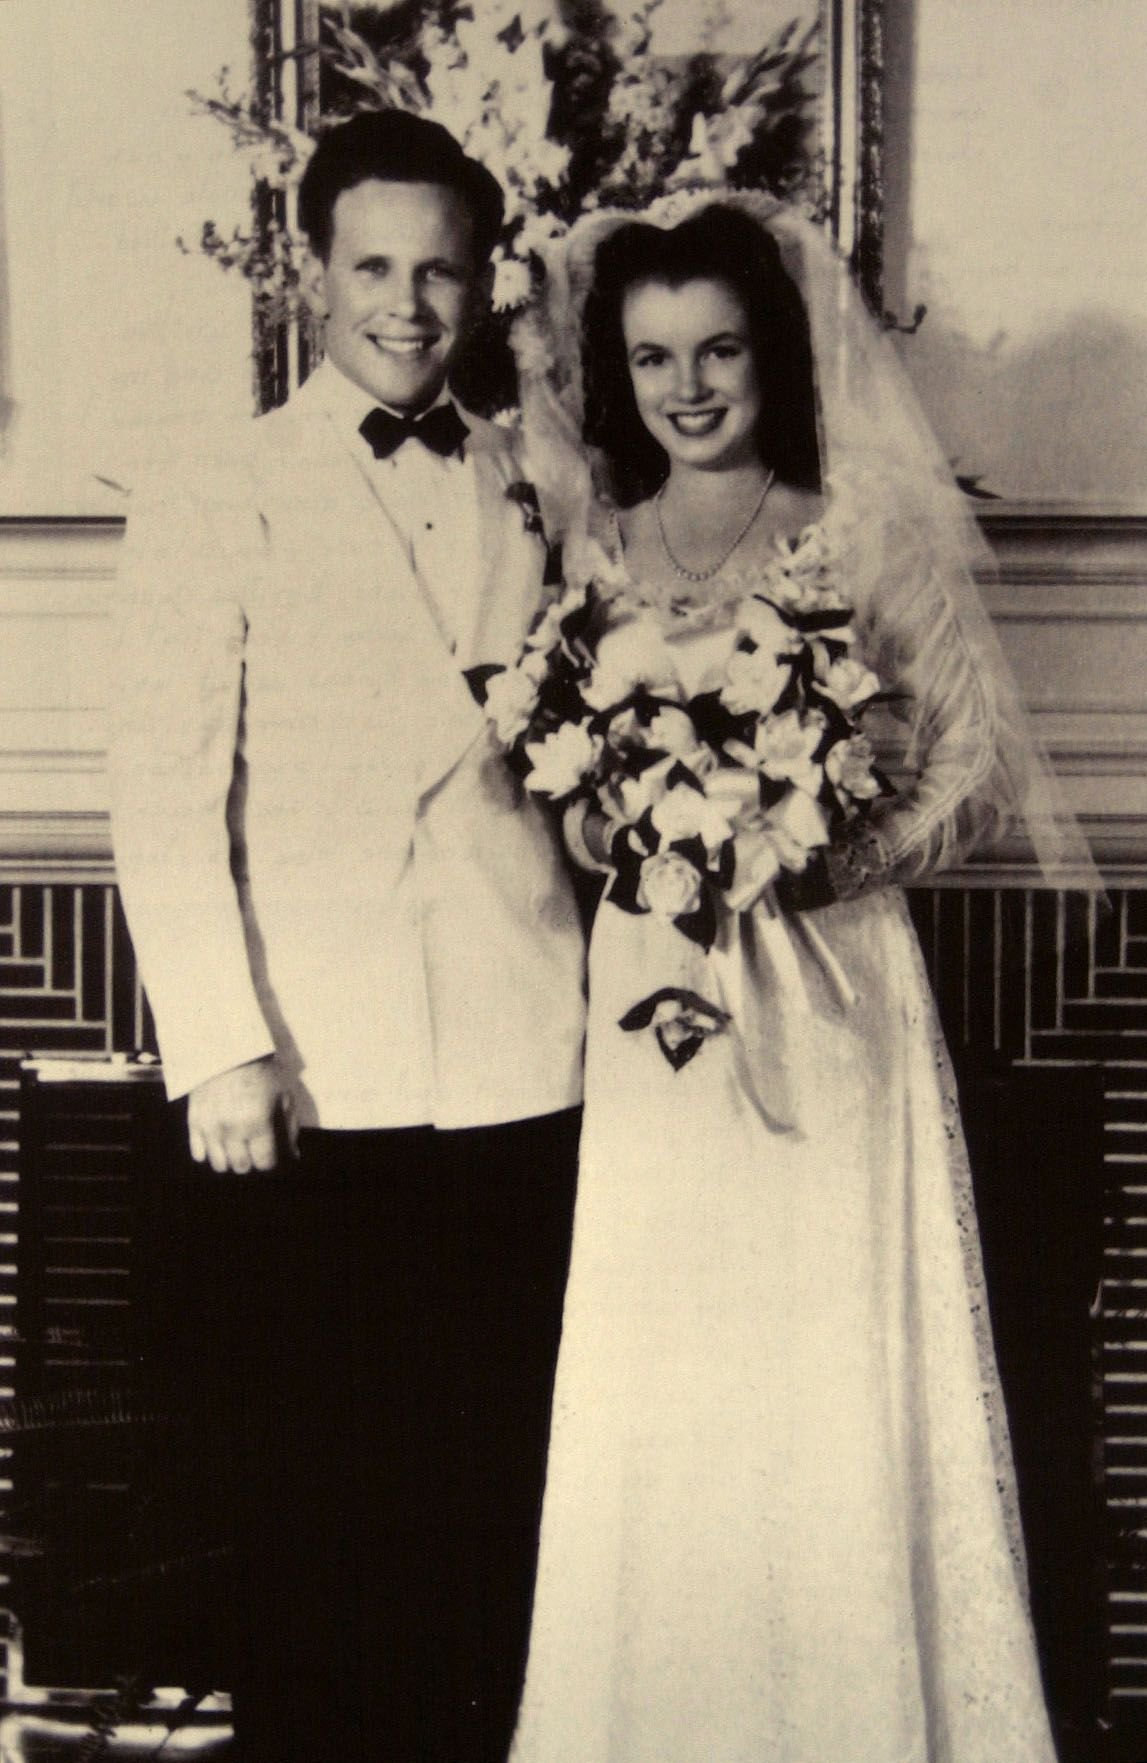 Jim Dougherty and the 16-year-old Norma Jean Baker on their wedding day in June of 1942 | Source: Getty Images